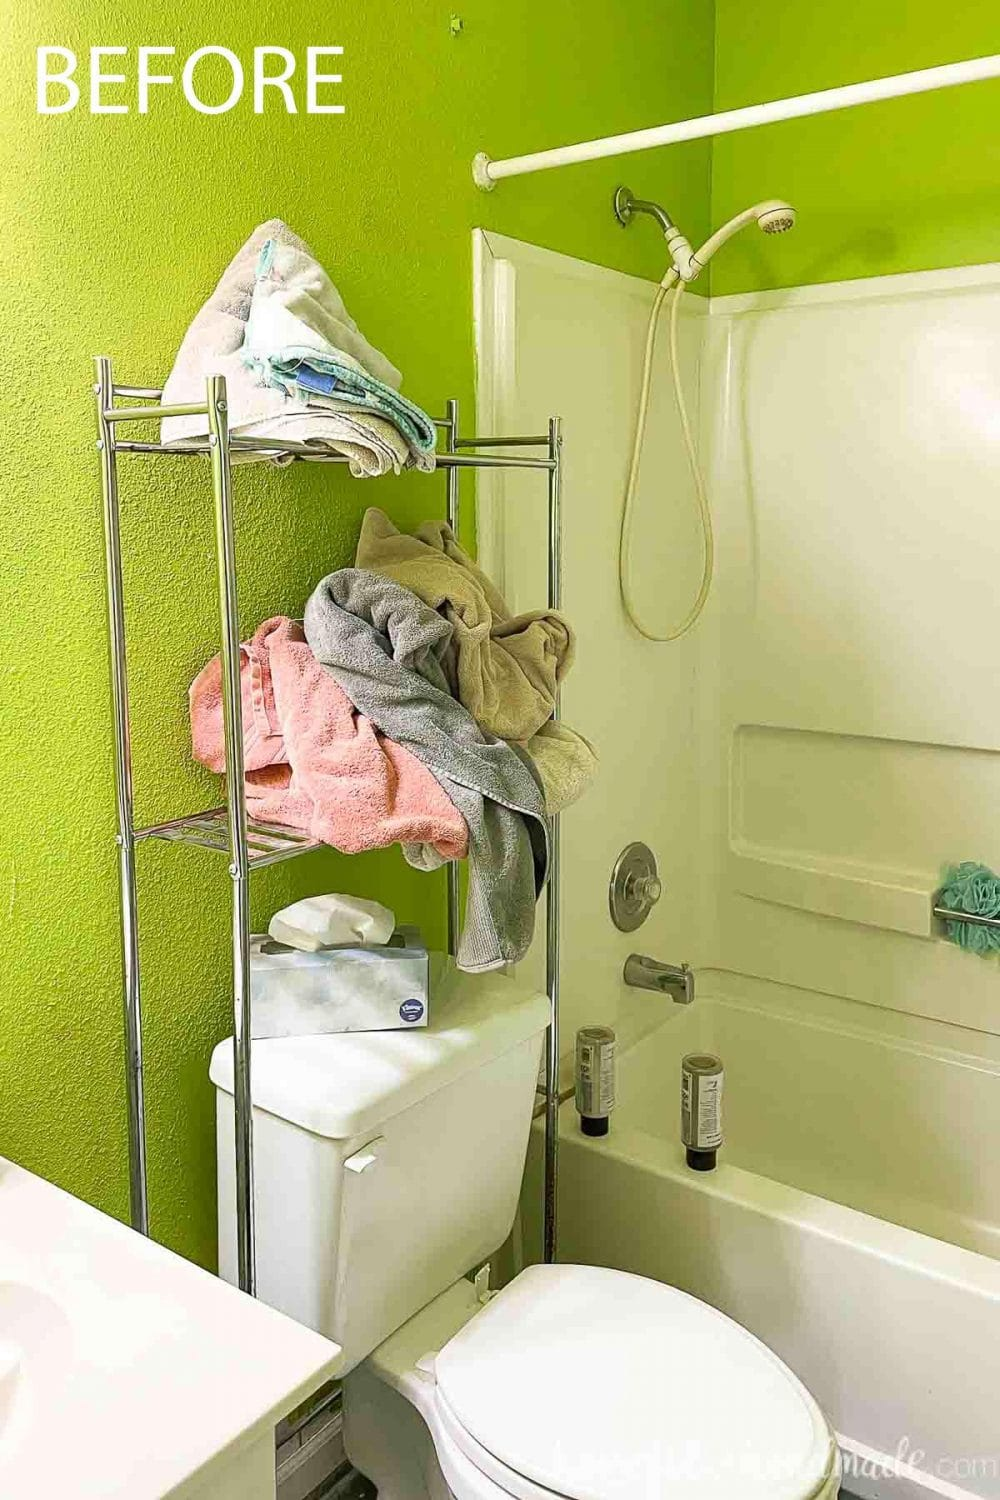 Picture of the green walls and metal shelving with poorly folded towels over the toilet.